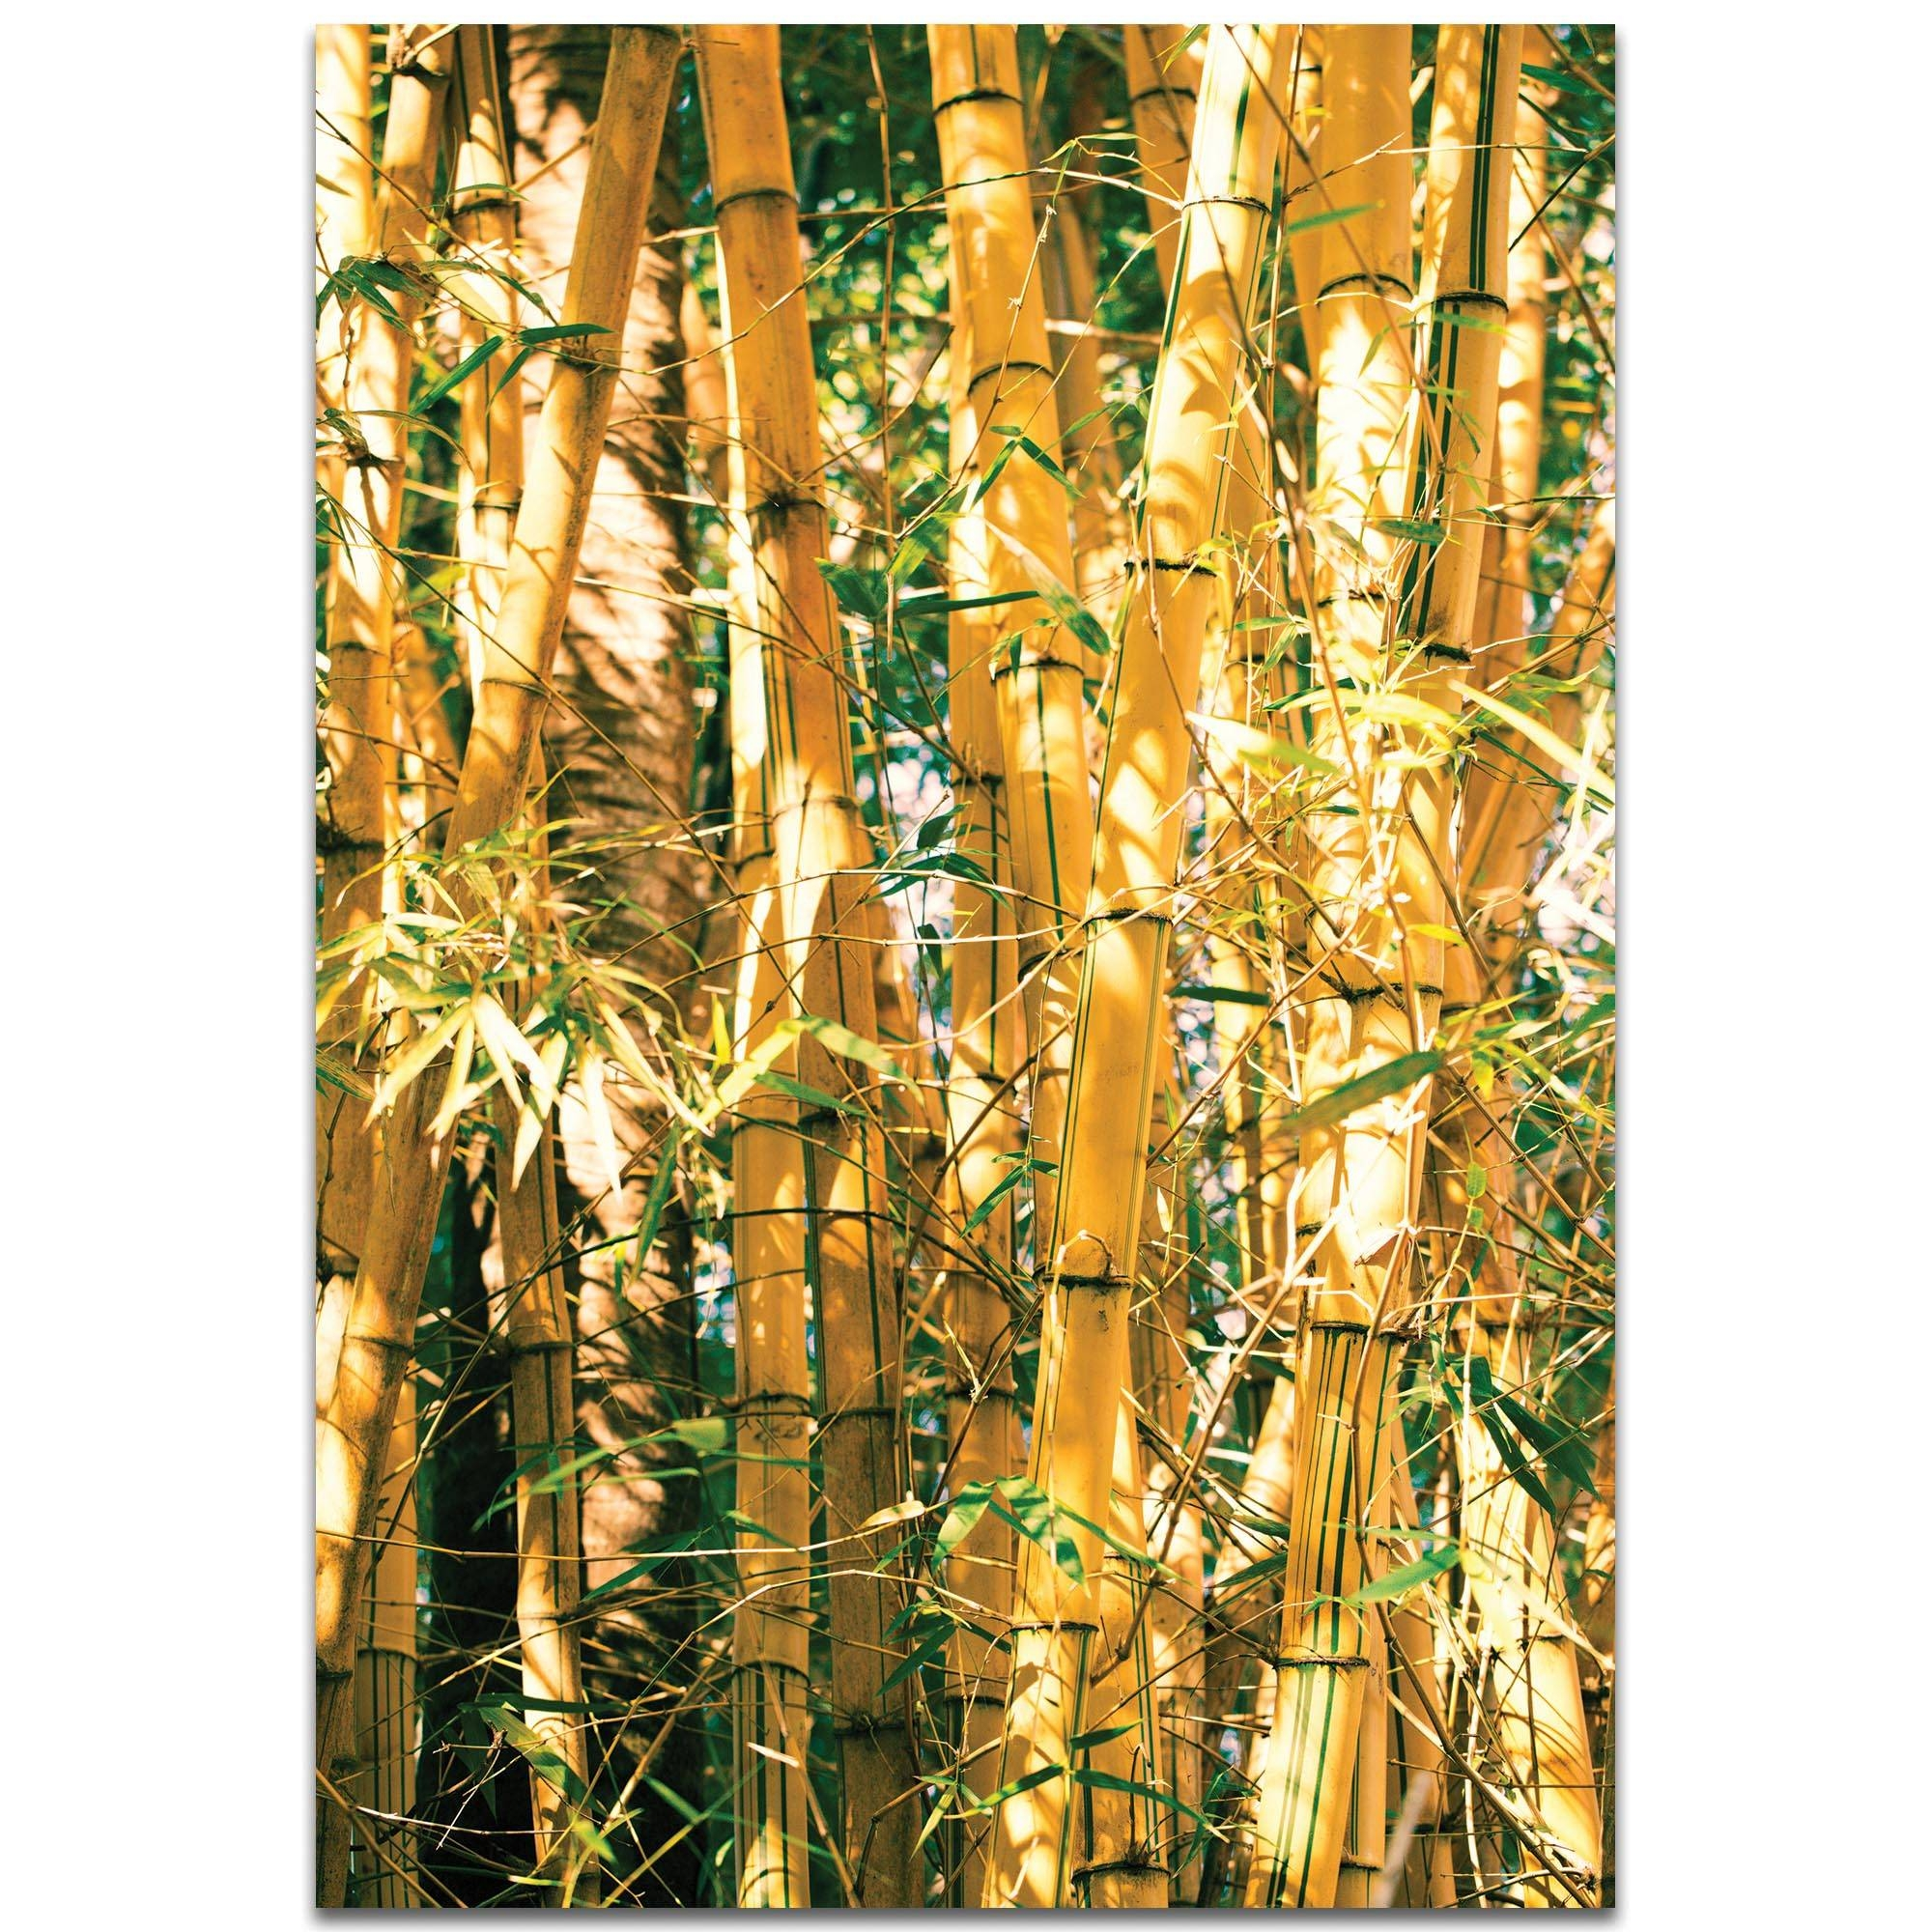 Metal Art Studio – Bamboo Goldmeirav Levy – Nature Photography Intended For Most Recently Released Bamboo Metal Wall Art (View 5 of 25)